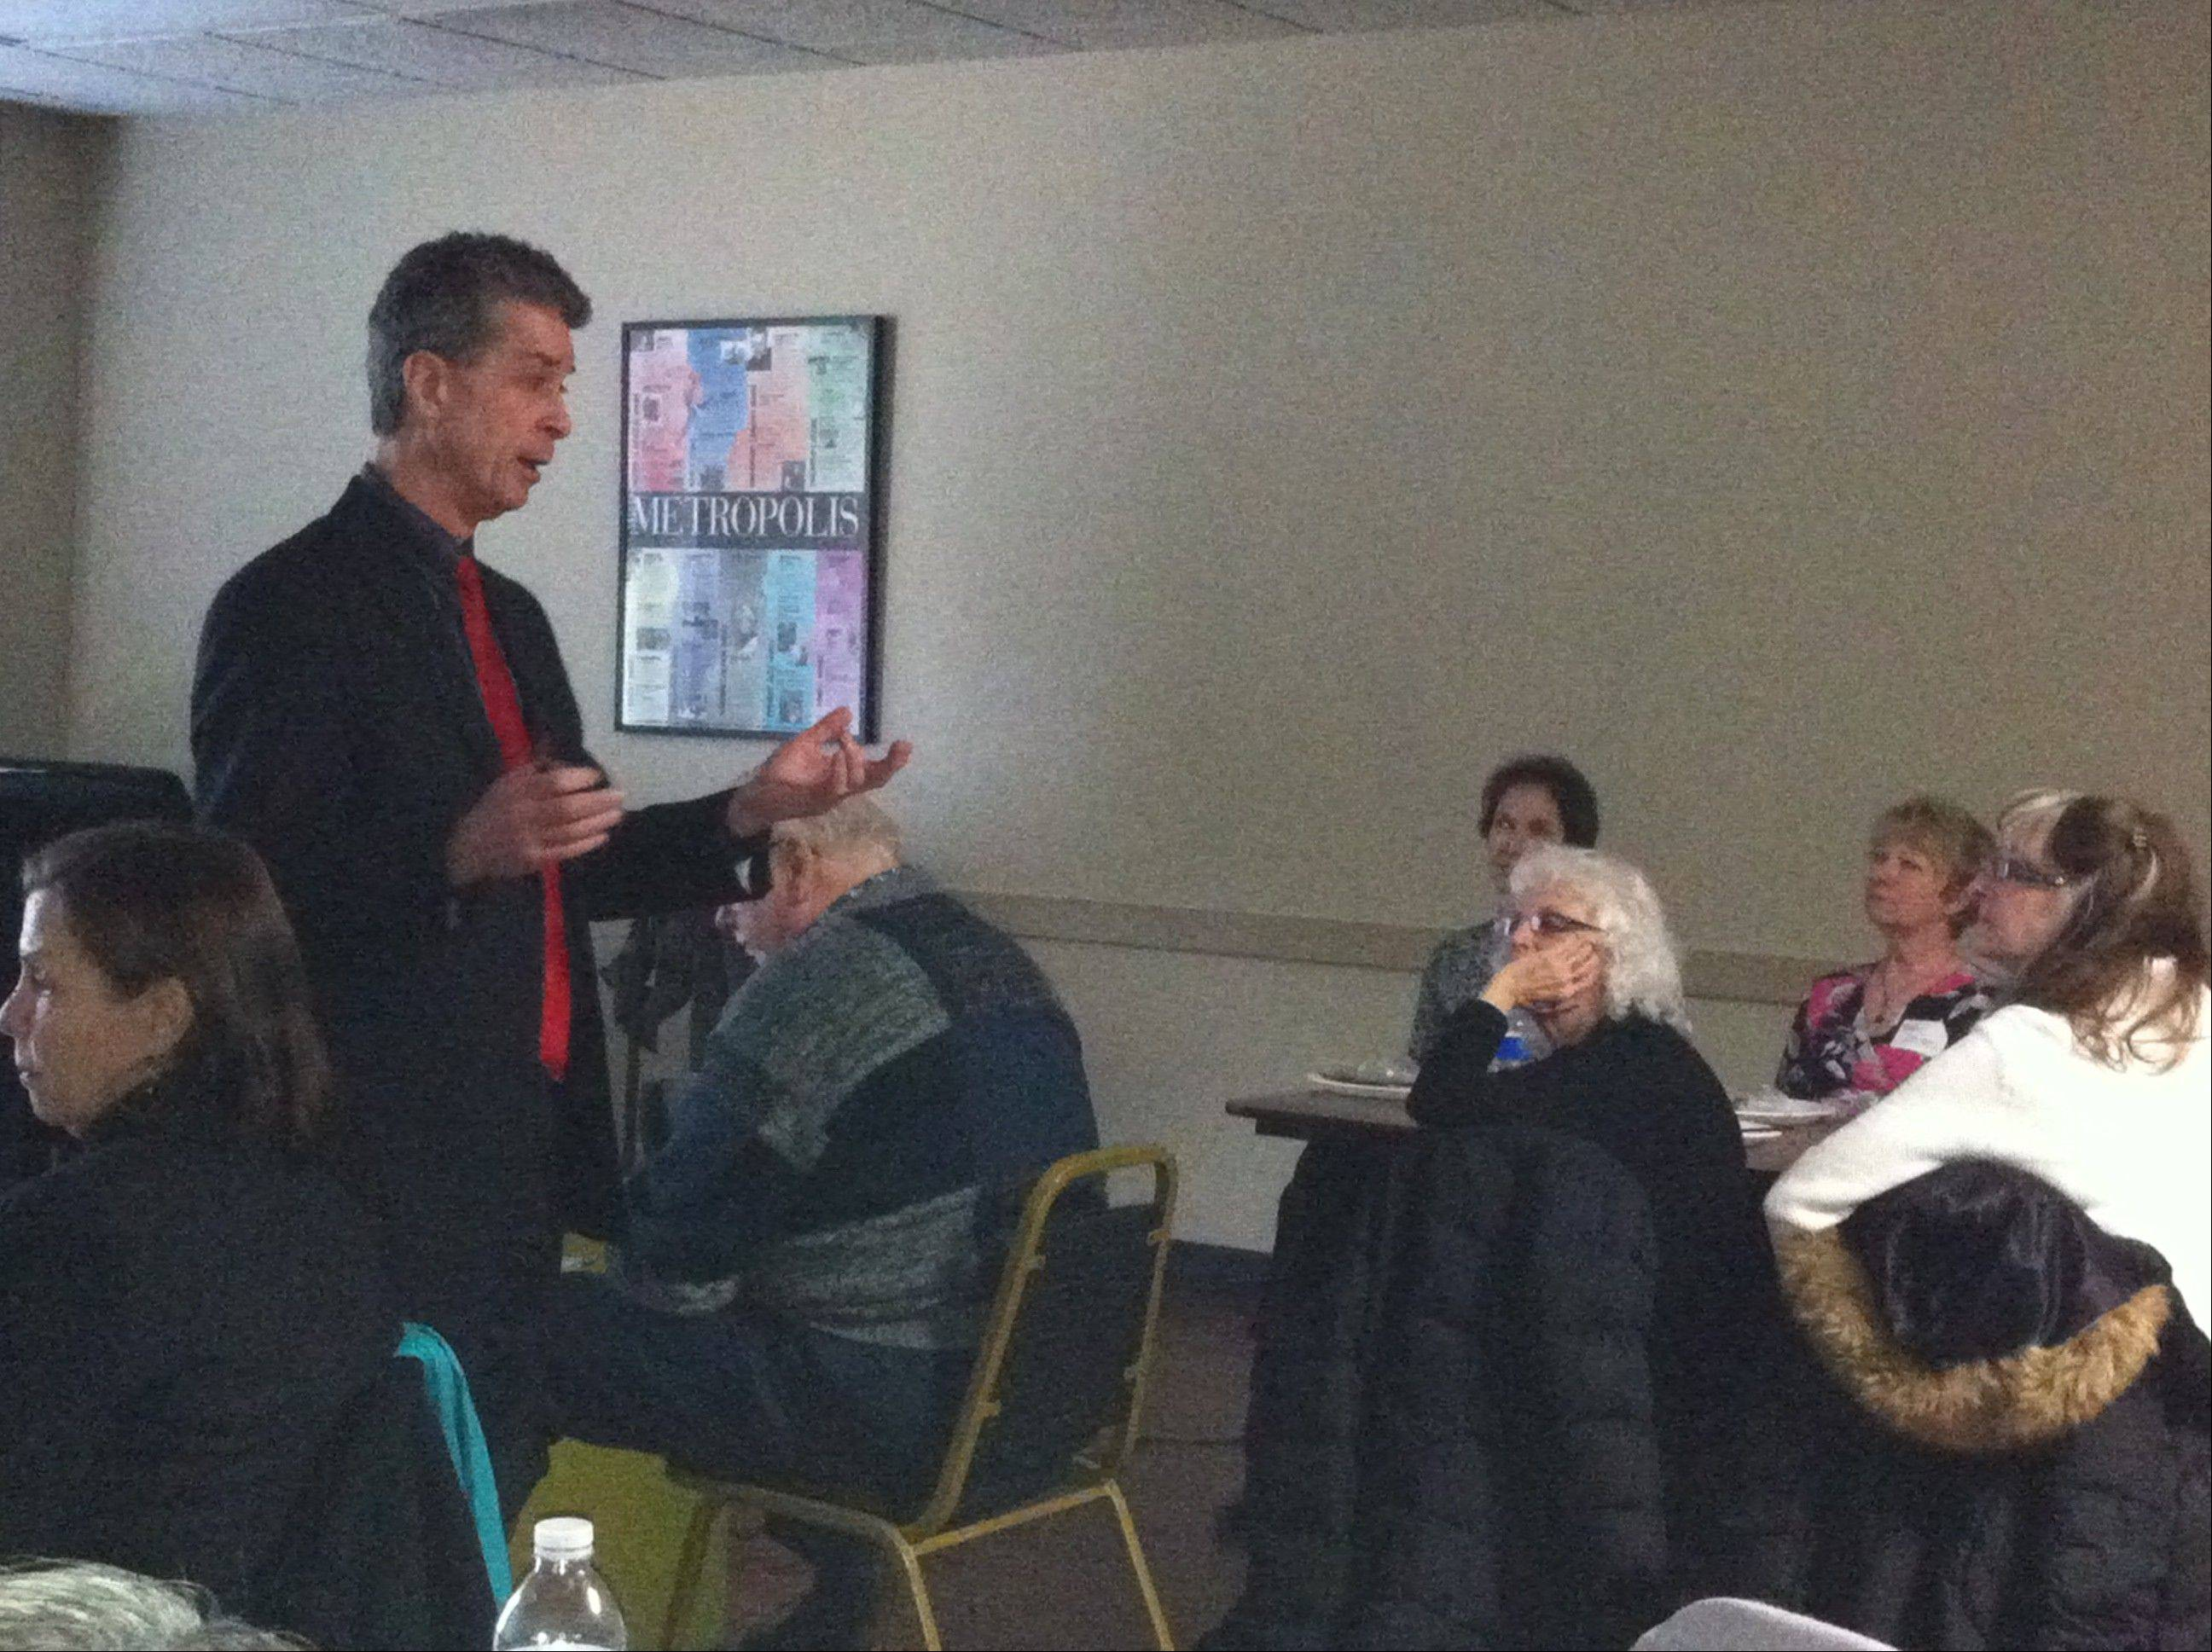 Daily Herald Film Critic Dann Gire discusses his Oscar predictions with the Arlington Heights Chamber of Commerce's Professional Women's Council during the groups monthly lunch meeting Wednesday.